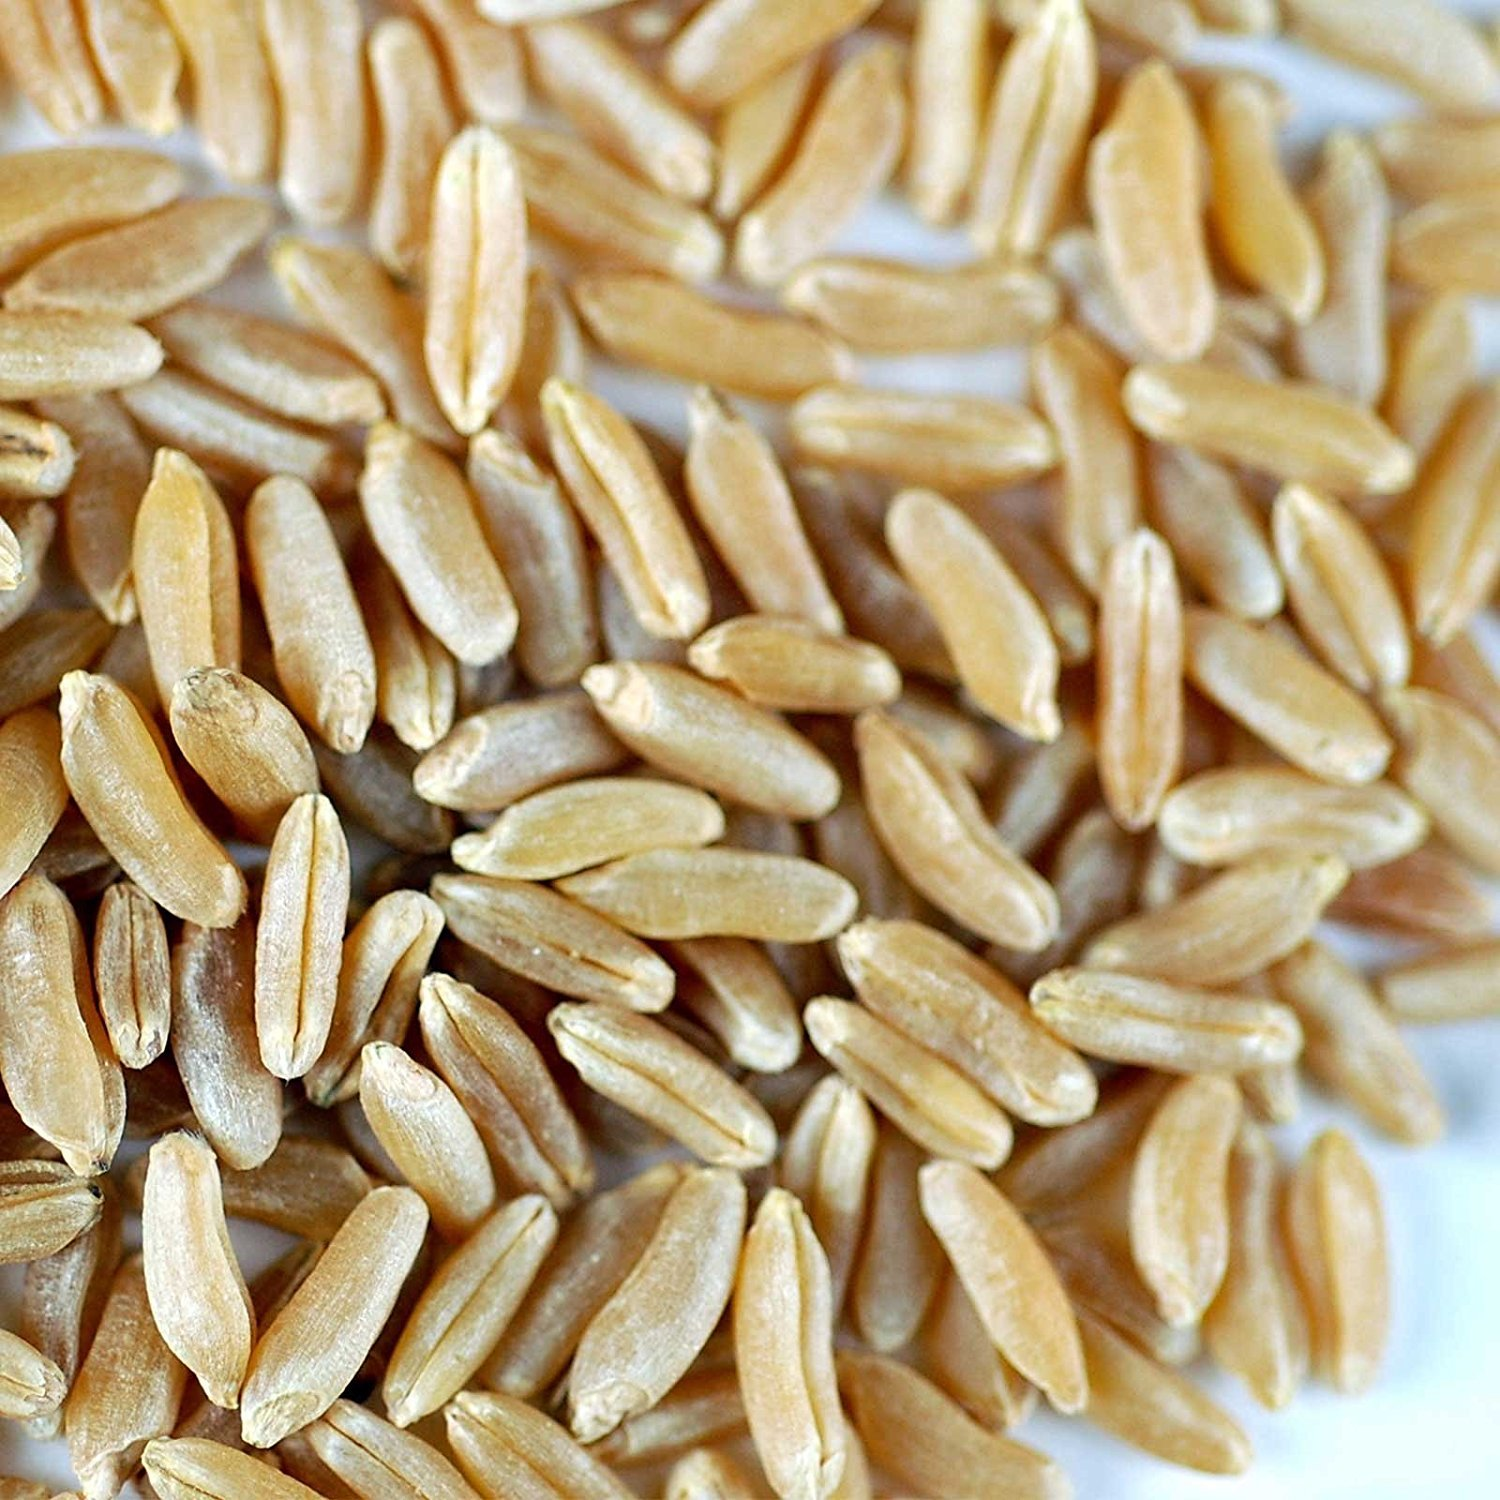 Organic Kamut Seed- 1 Lb- Kamut Grain Seeds- For Growing Kamut Grass, Flour, Bread, Baking, Cooking, Food Storage, Sprouting by Handy Pantry (Image #2)